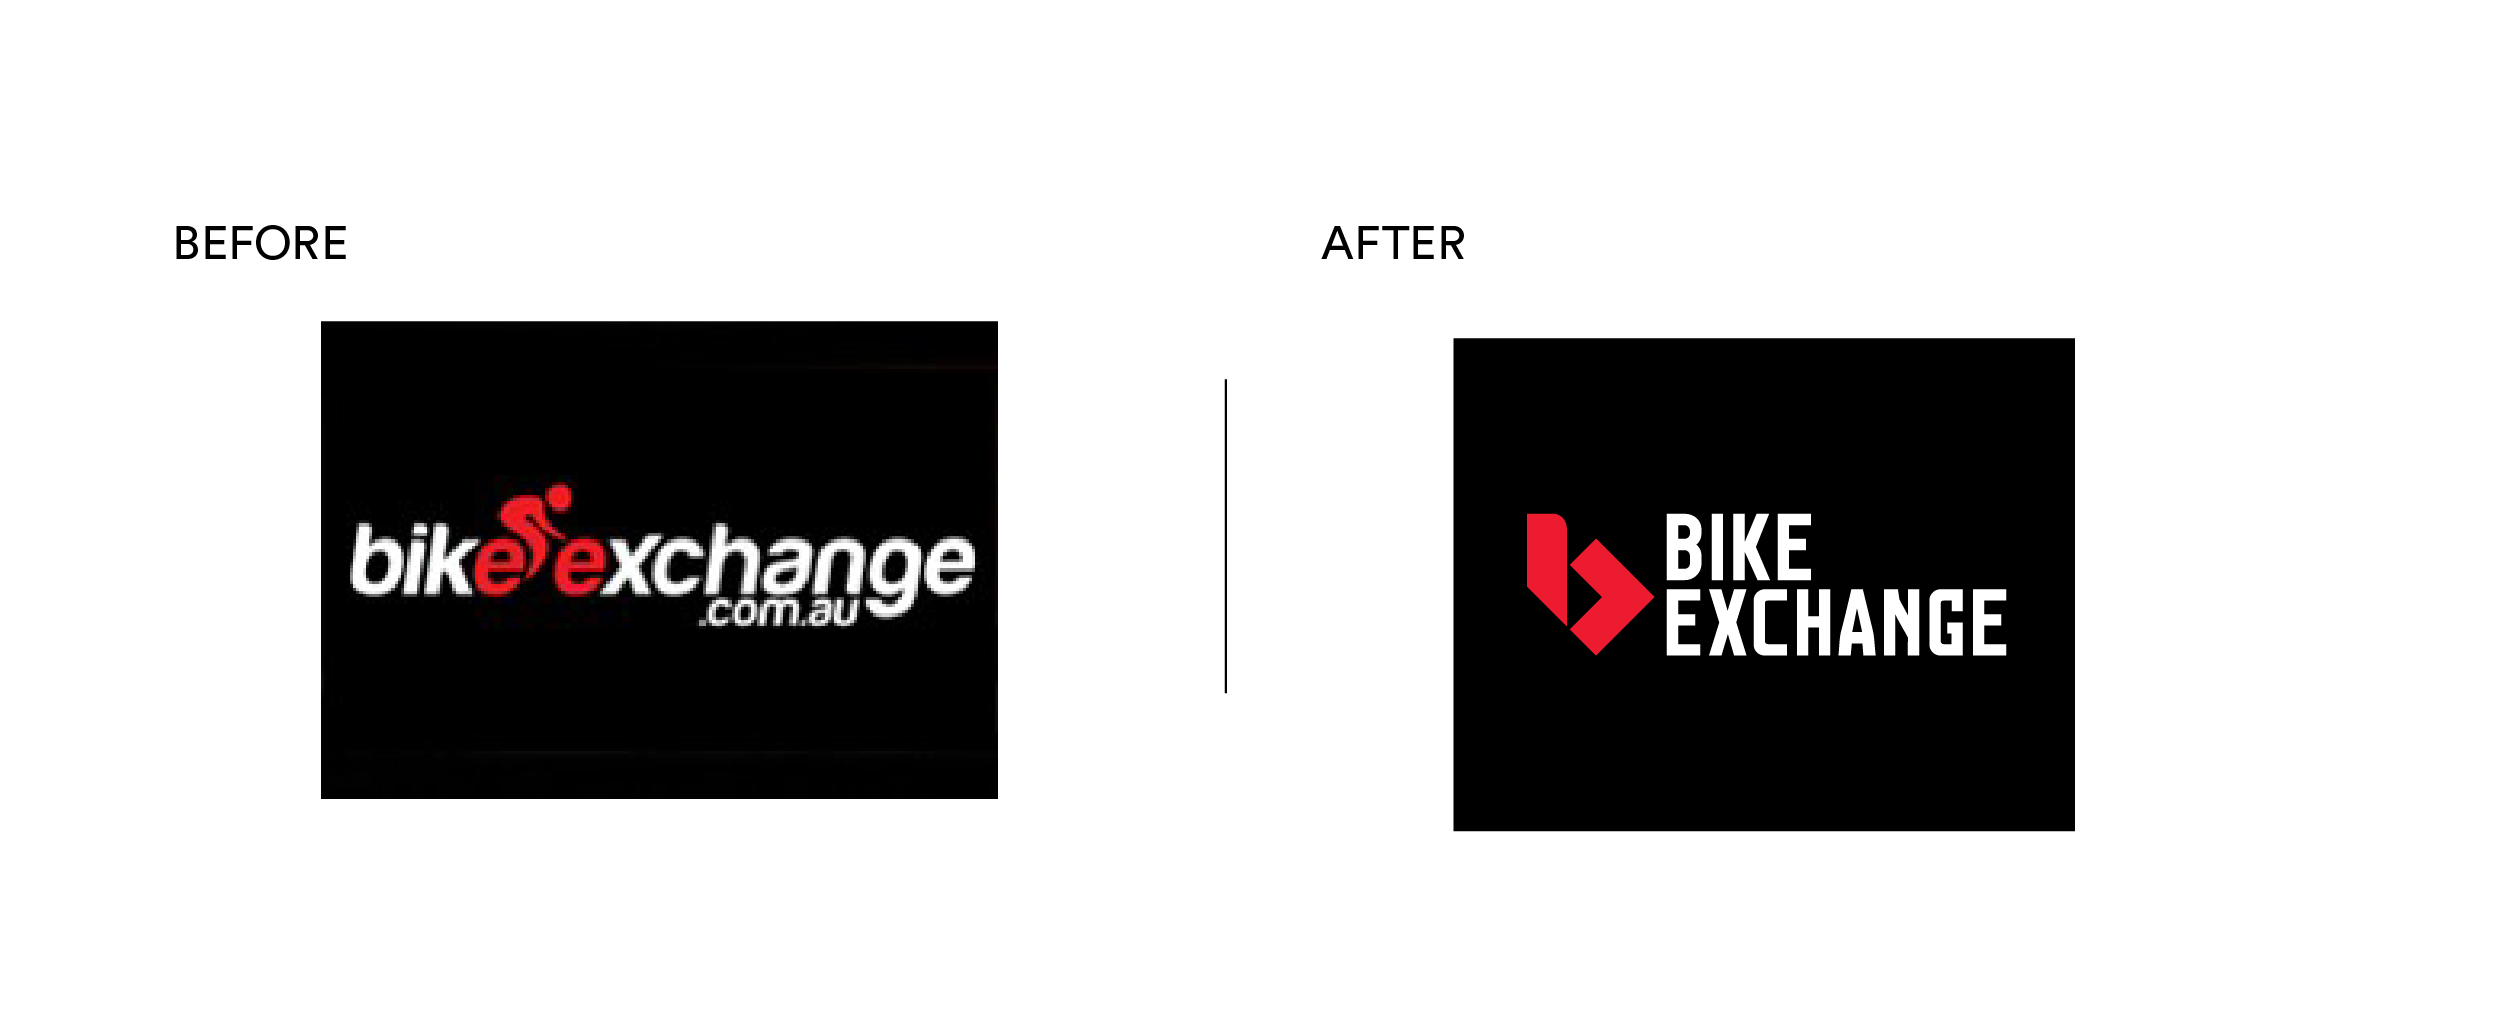 Bike Exchange Brand Mark before and after brand refresh